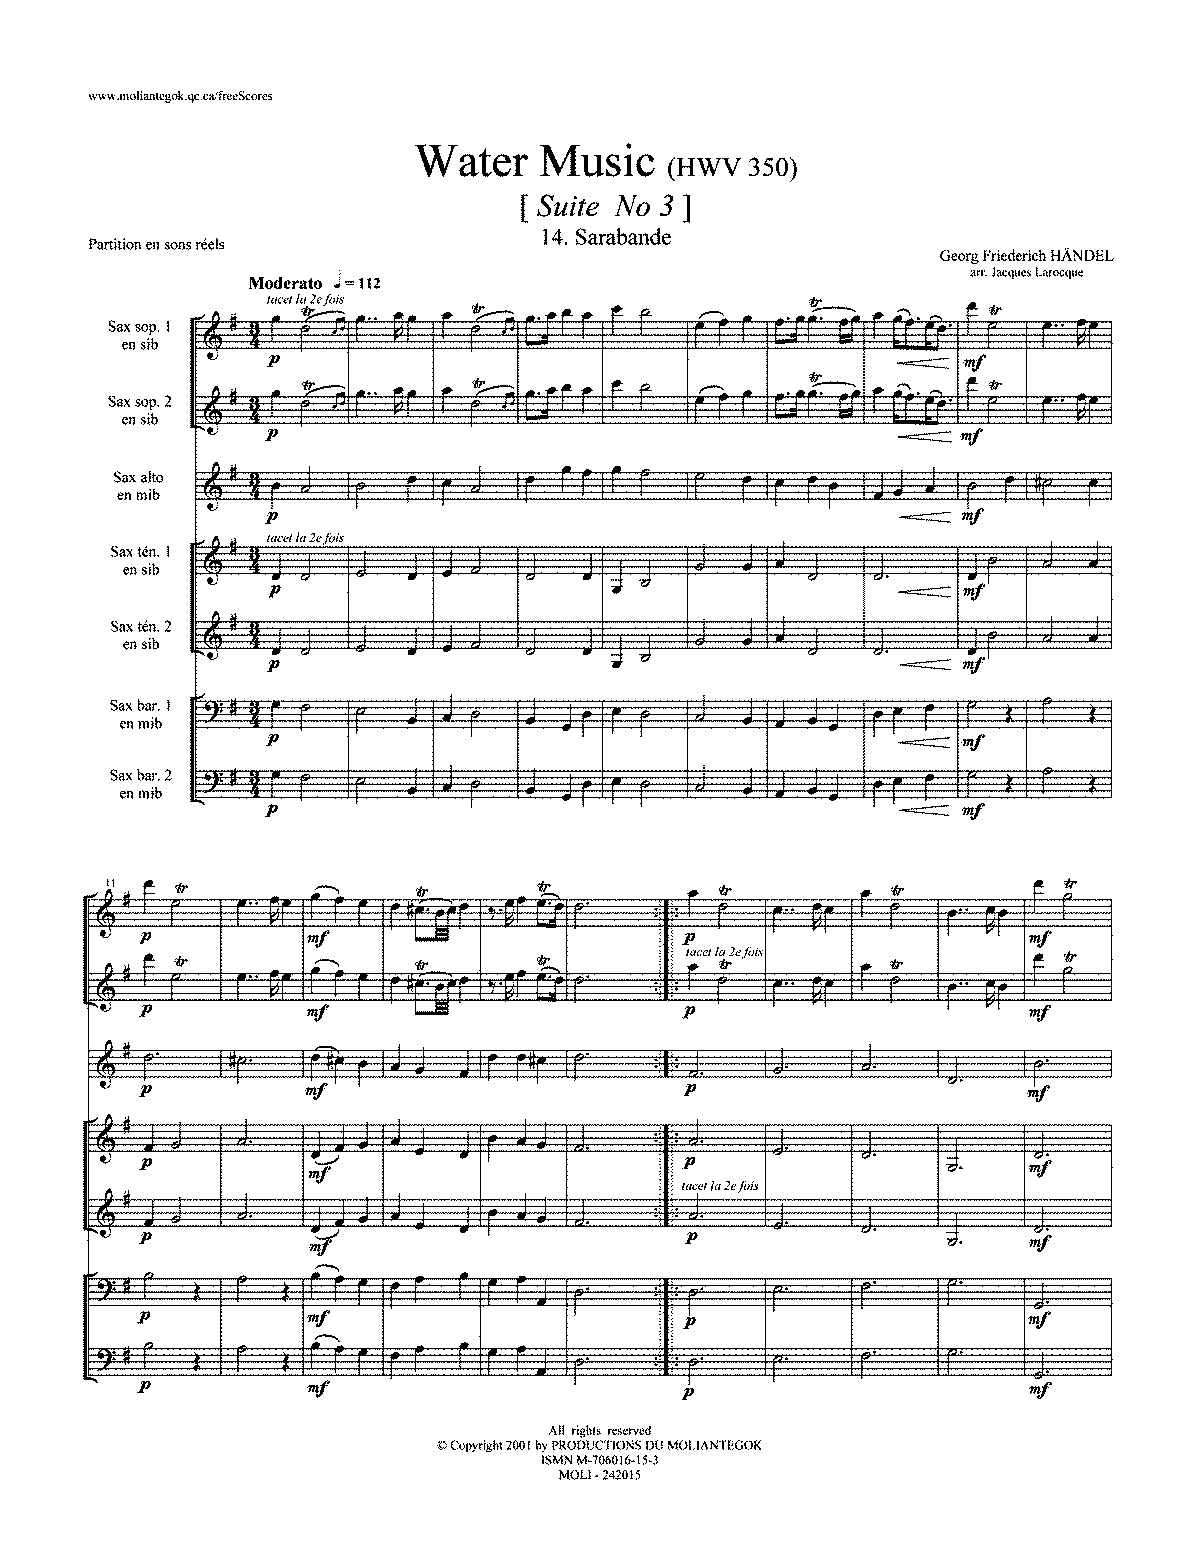 PMLP11283-Water Music-Suite-3-HWV 350 - Compl Score.pdf